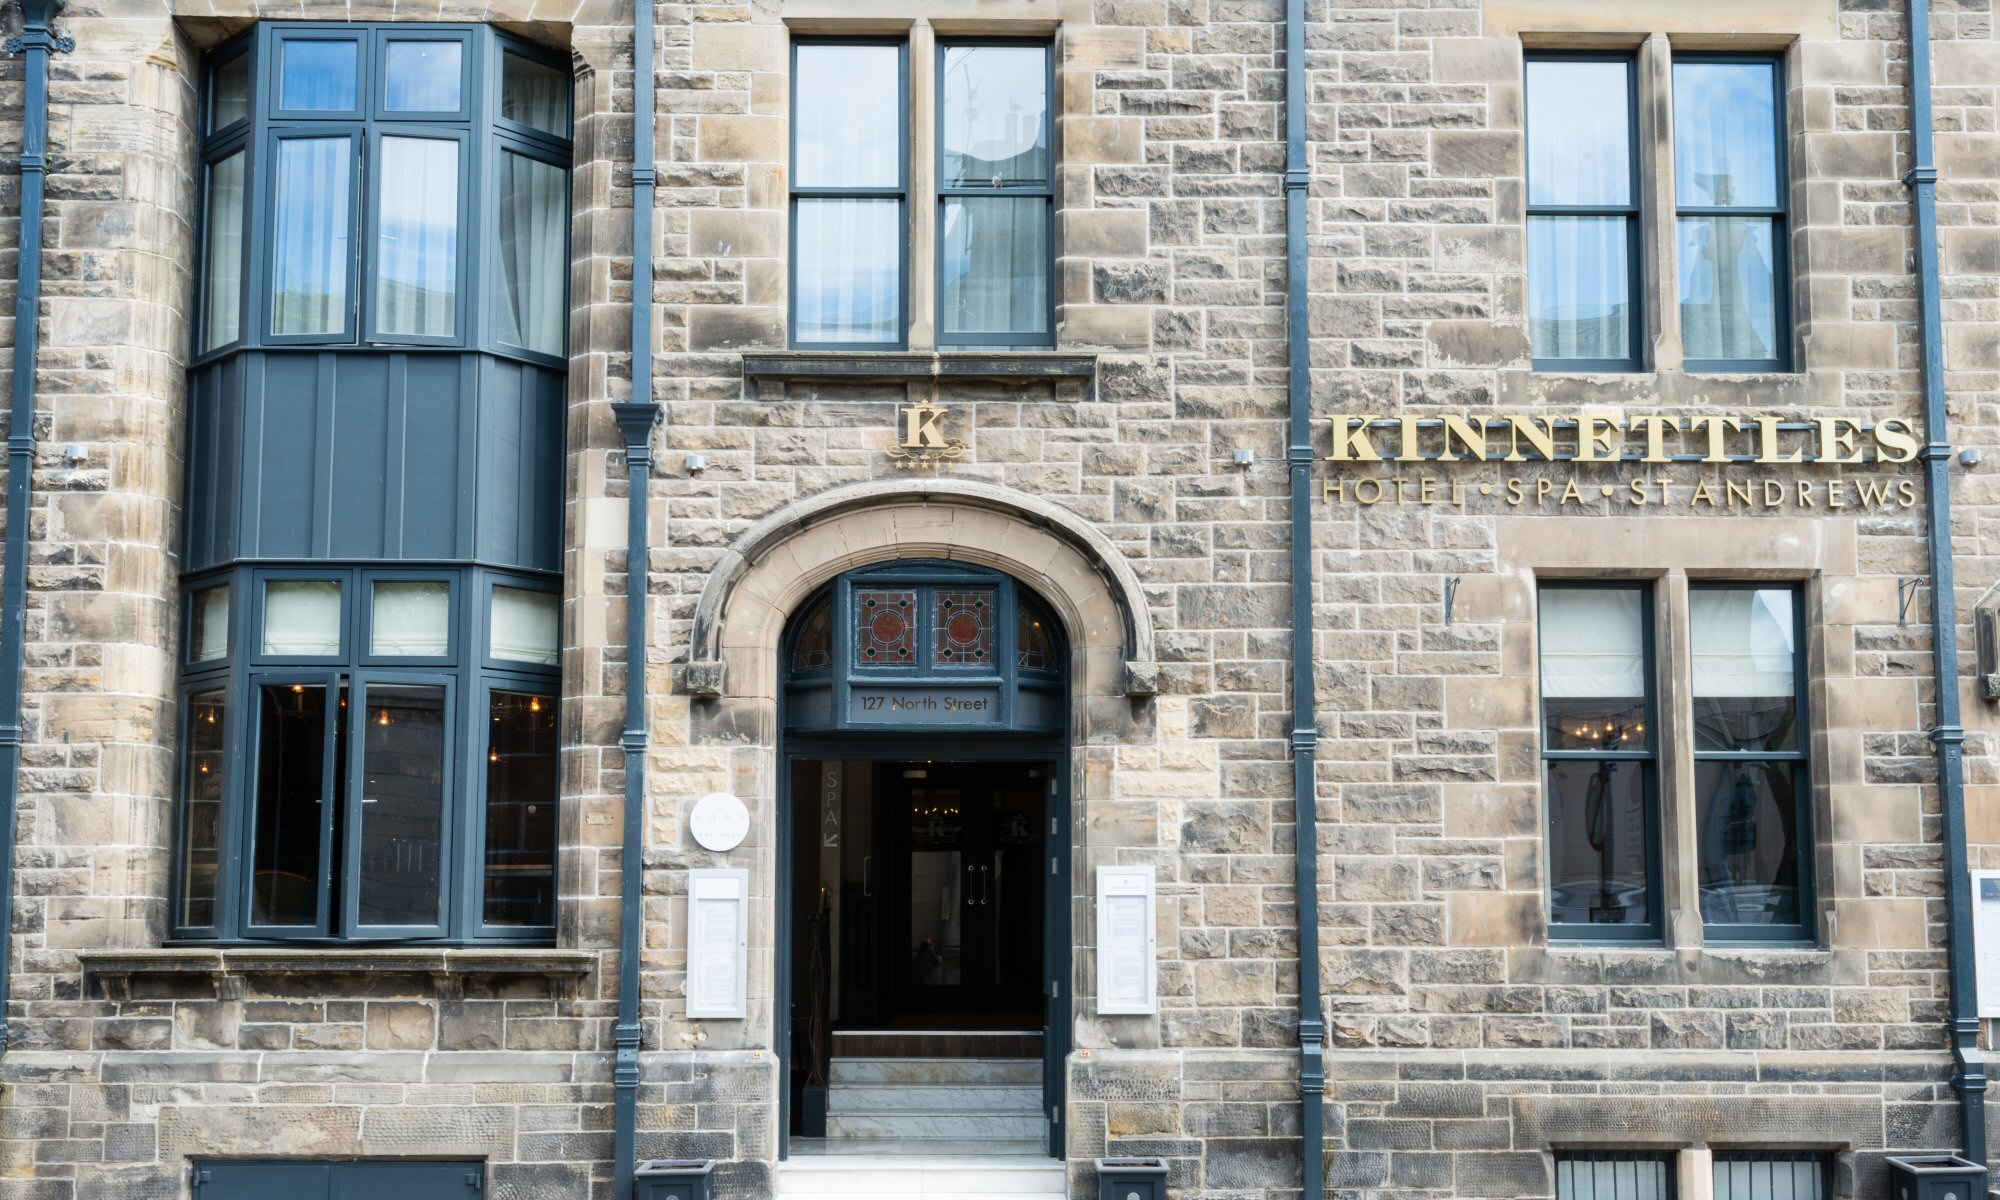 Access Control System for Kinnettles Hotel